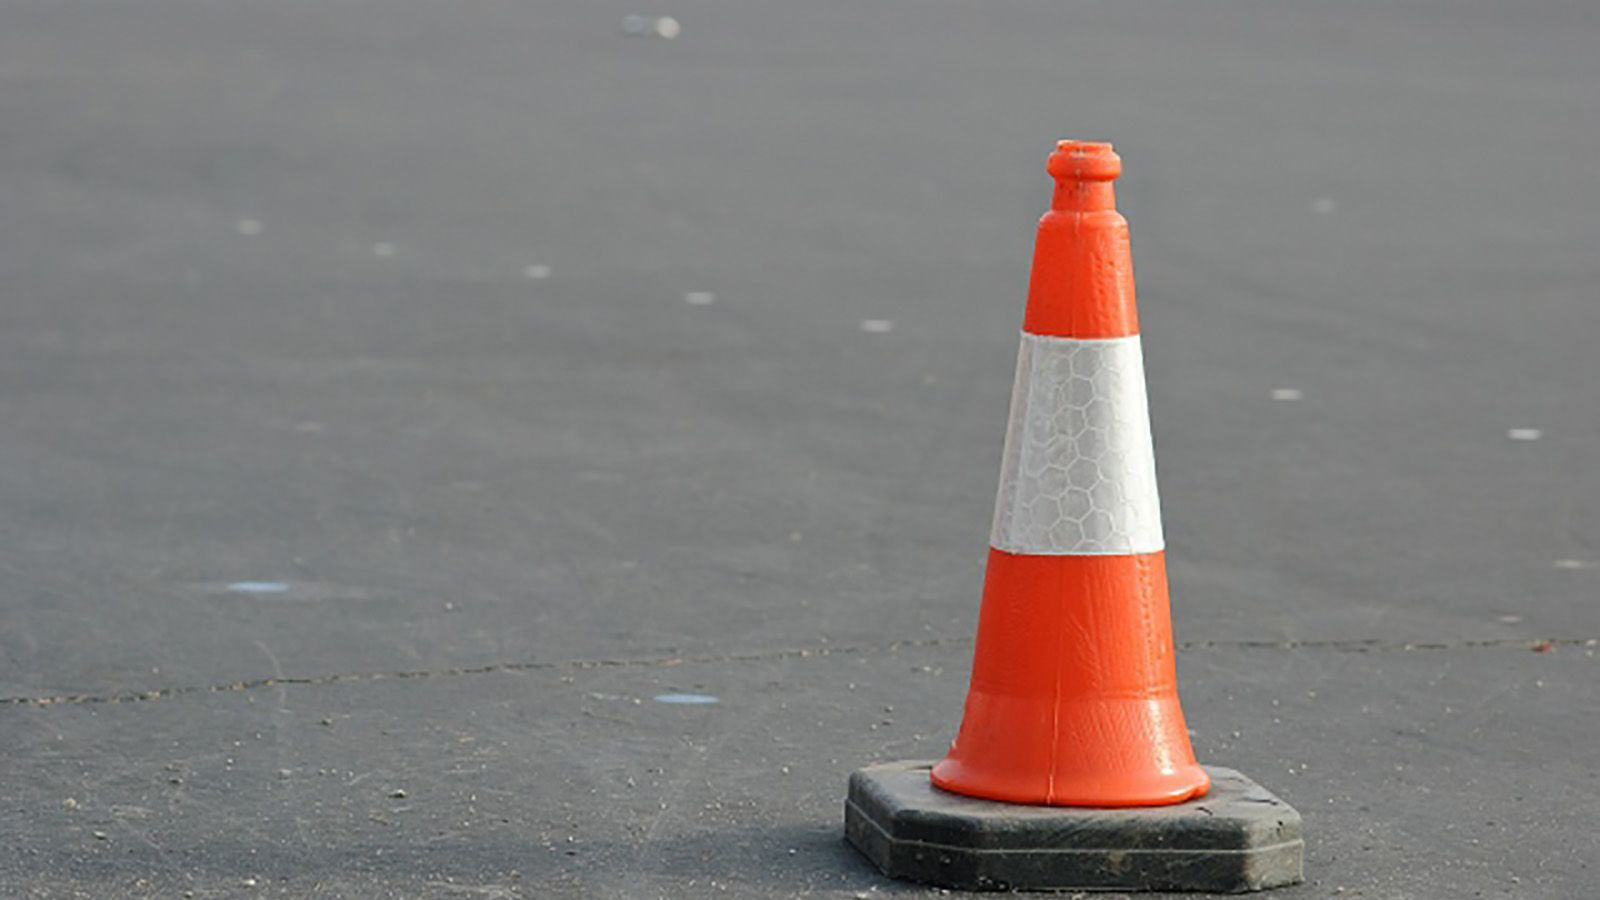 A traffic cone on a bitumen road surface banner image